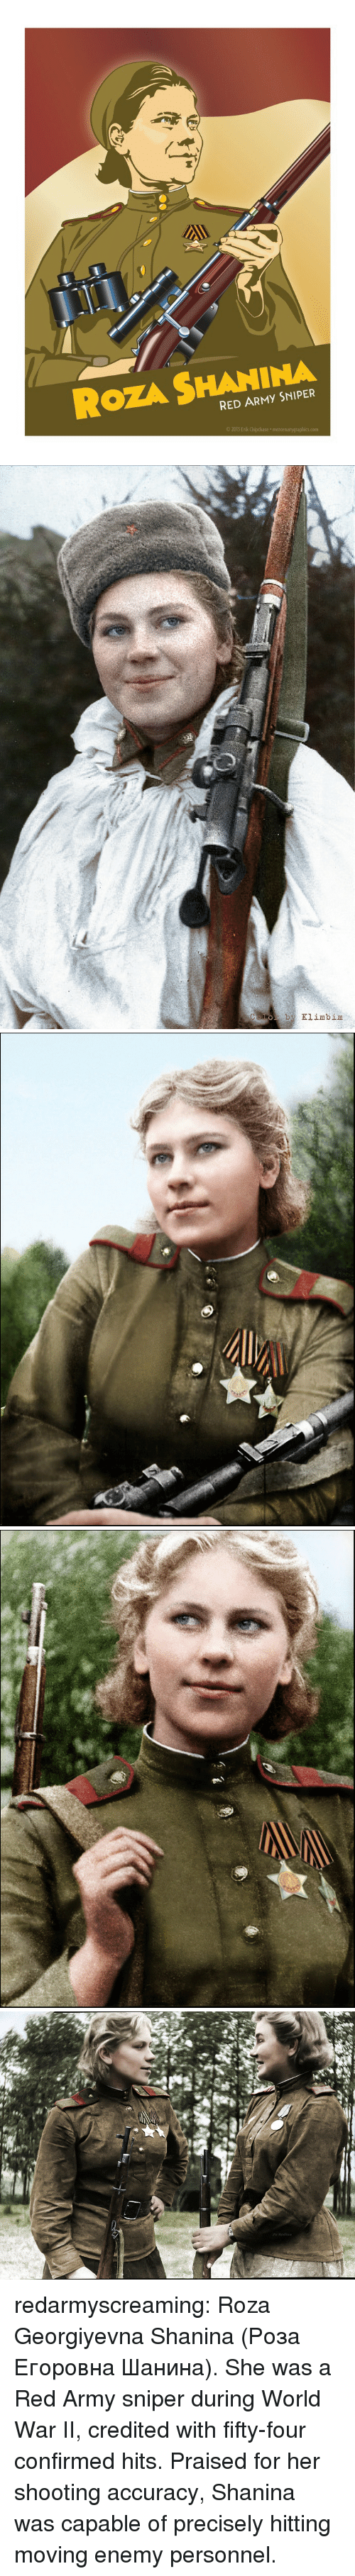 Credited: ROZA SHANINA  RED ARMY SNIPER  2013 Erik Chipchase   Za Rodimm redarmyscreaming:  Roza Georgiyevna Shanina (Роза Егоровна Шанина). She was a Red Army  sniper during World War II, credited with fifty-four confirmed hits.  Praised for her shooting accuracy, Shanina was capable of precisely  hitting moving enemy personnel.